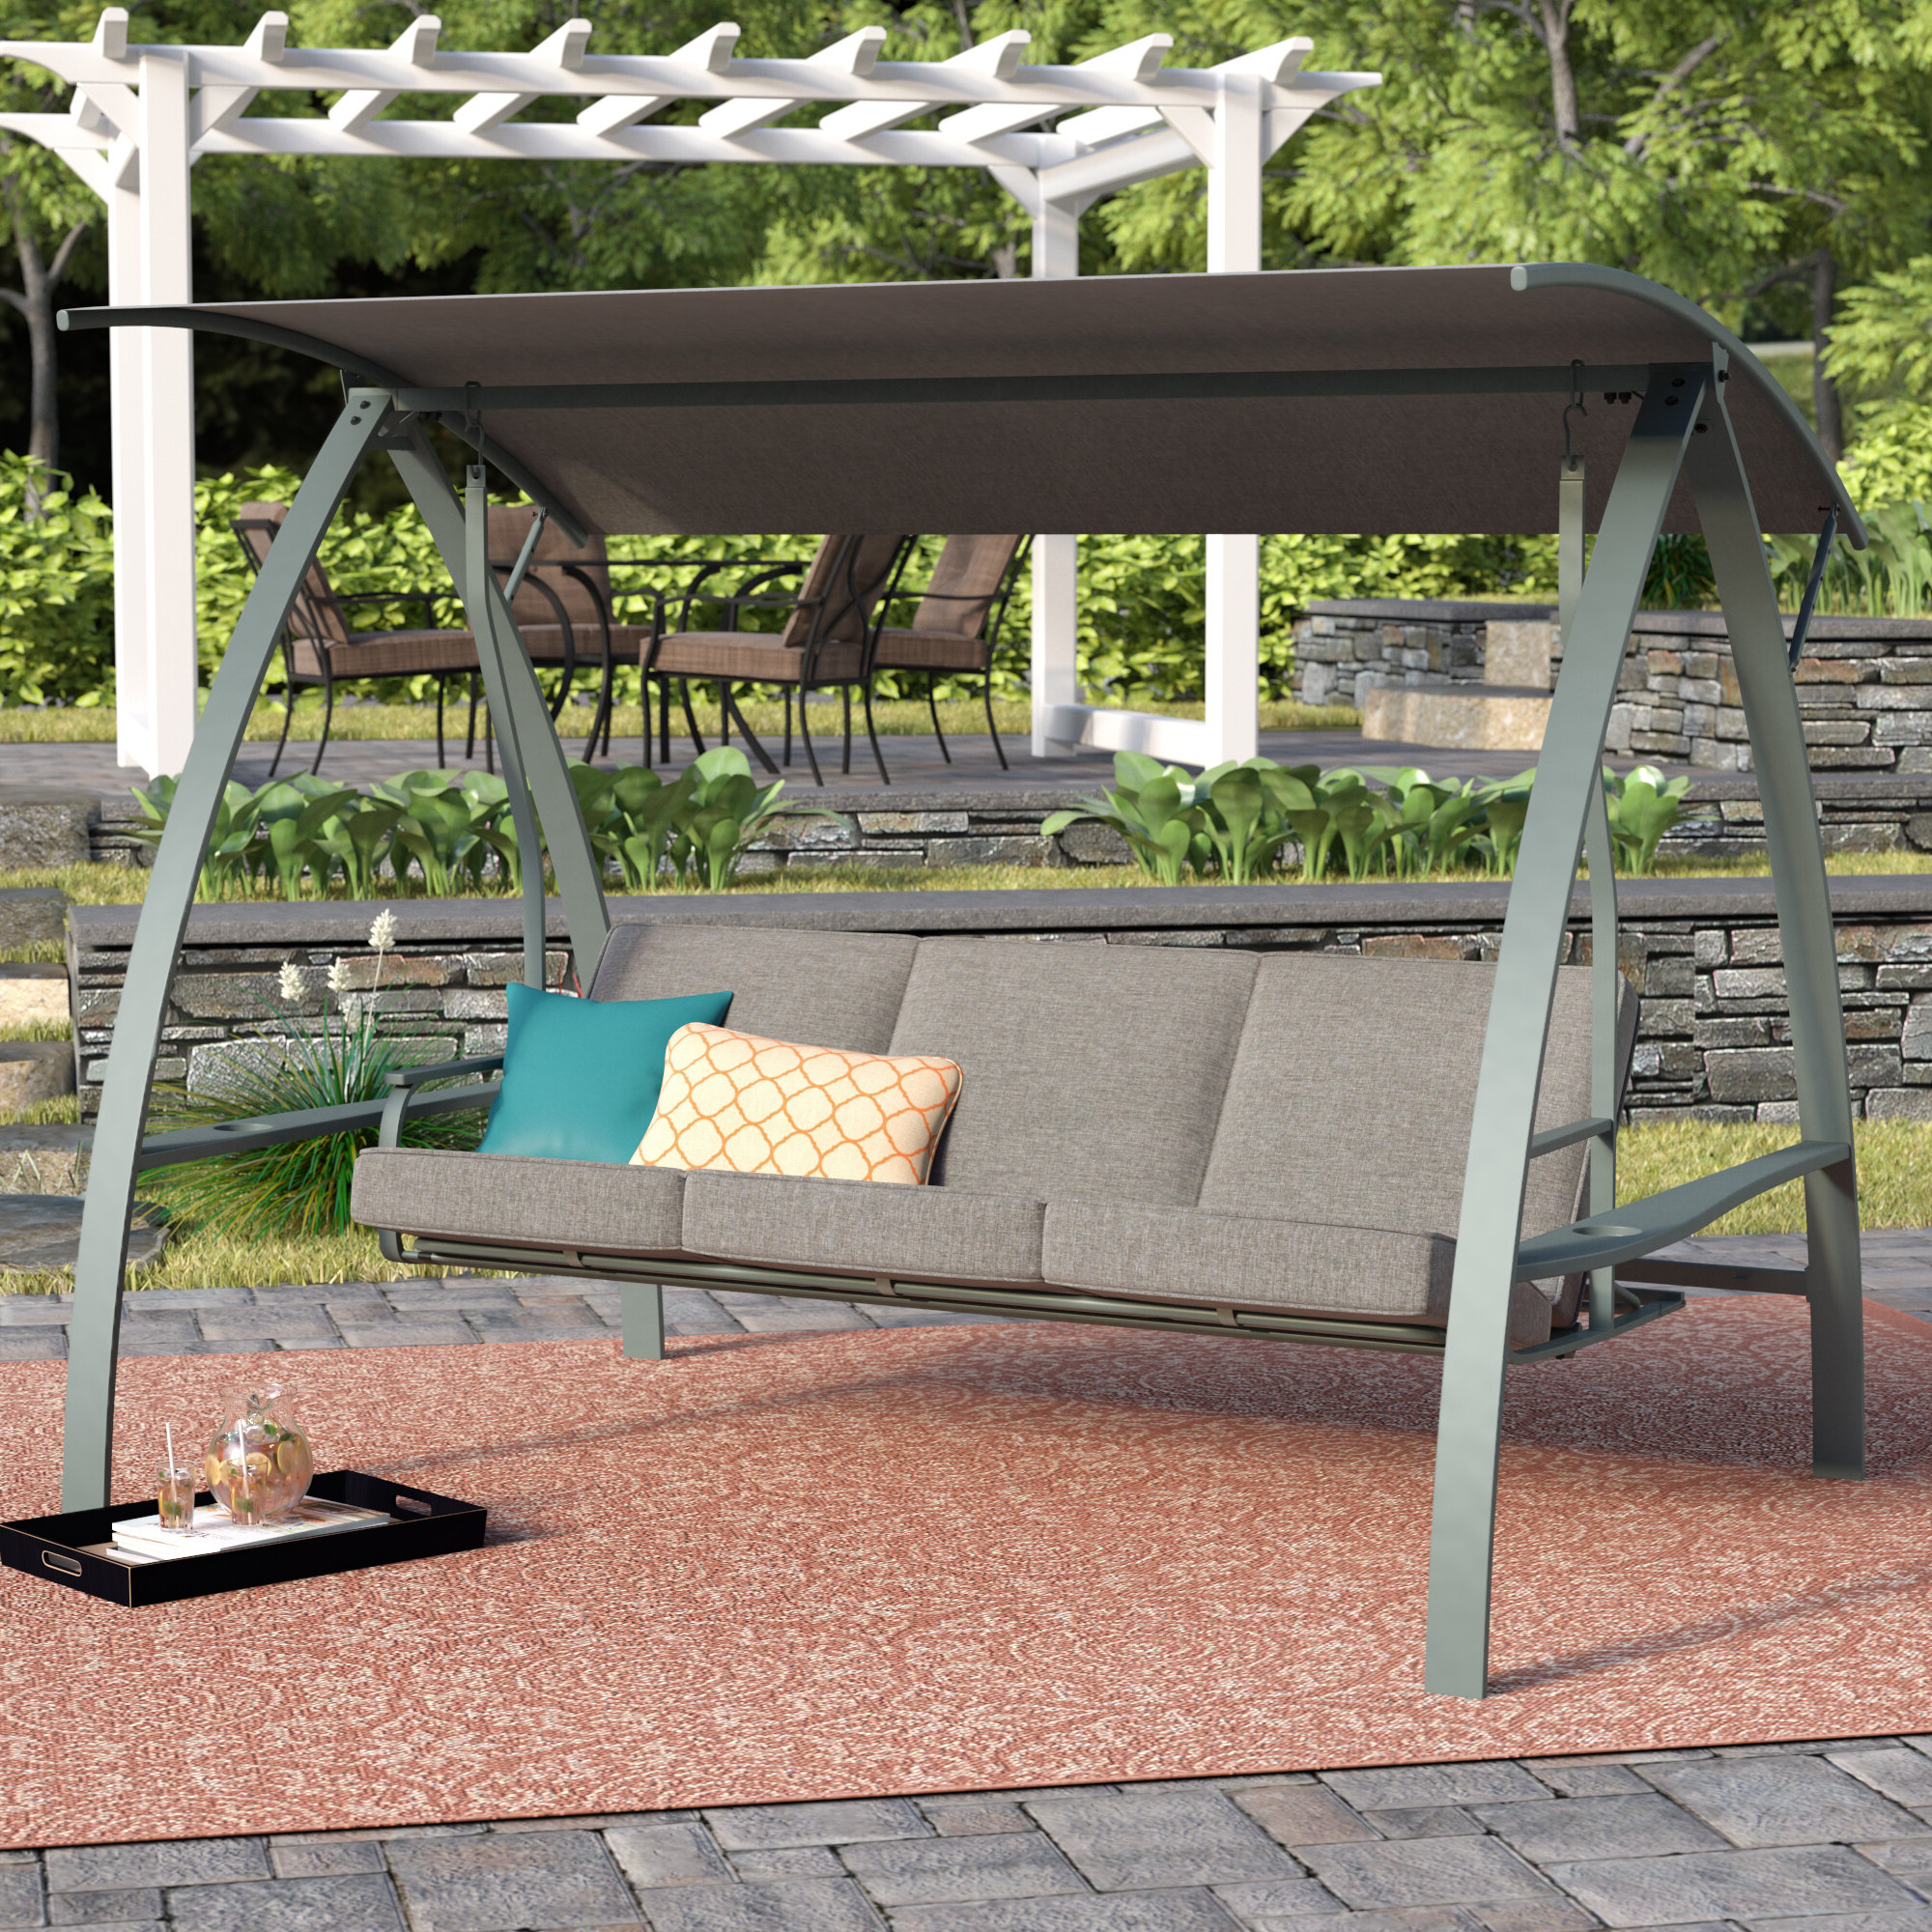 Andover Mills Marquette 3 Seat Daybed Porch Swing With Stand Regarding Preferred Patio Porch Swings With Stand (View 8 of 30)